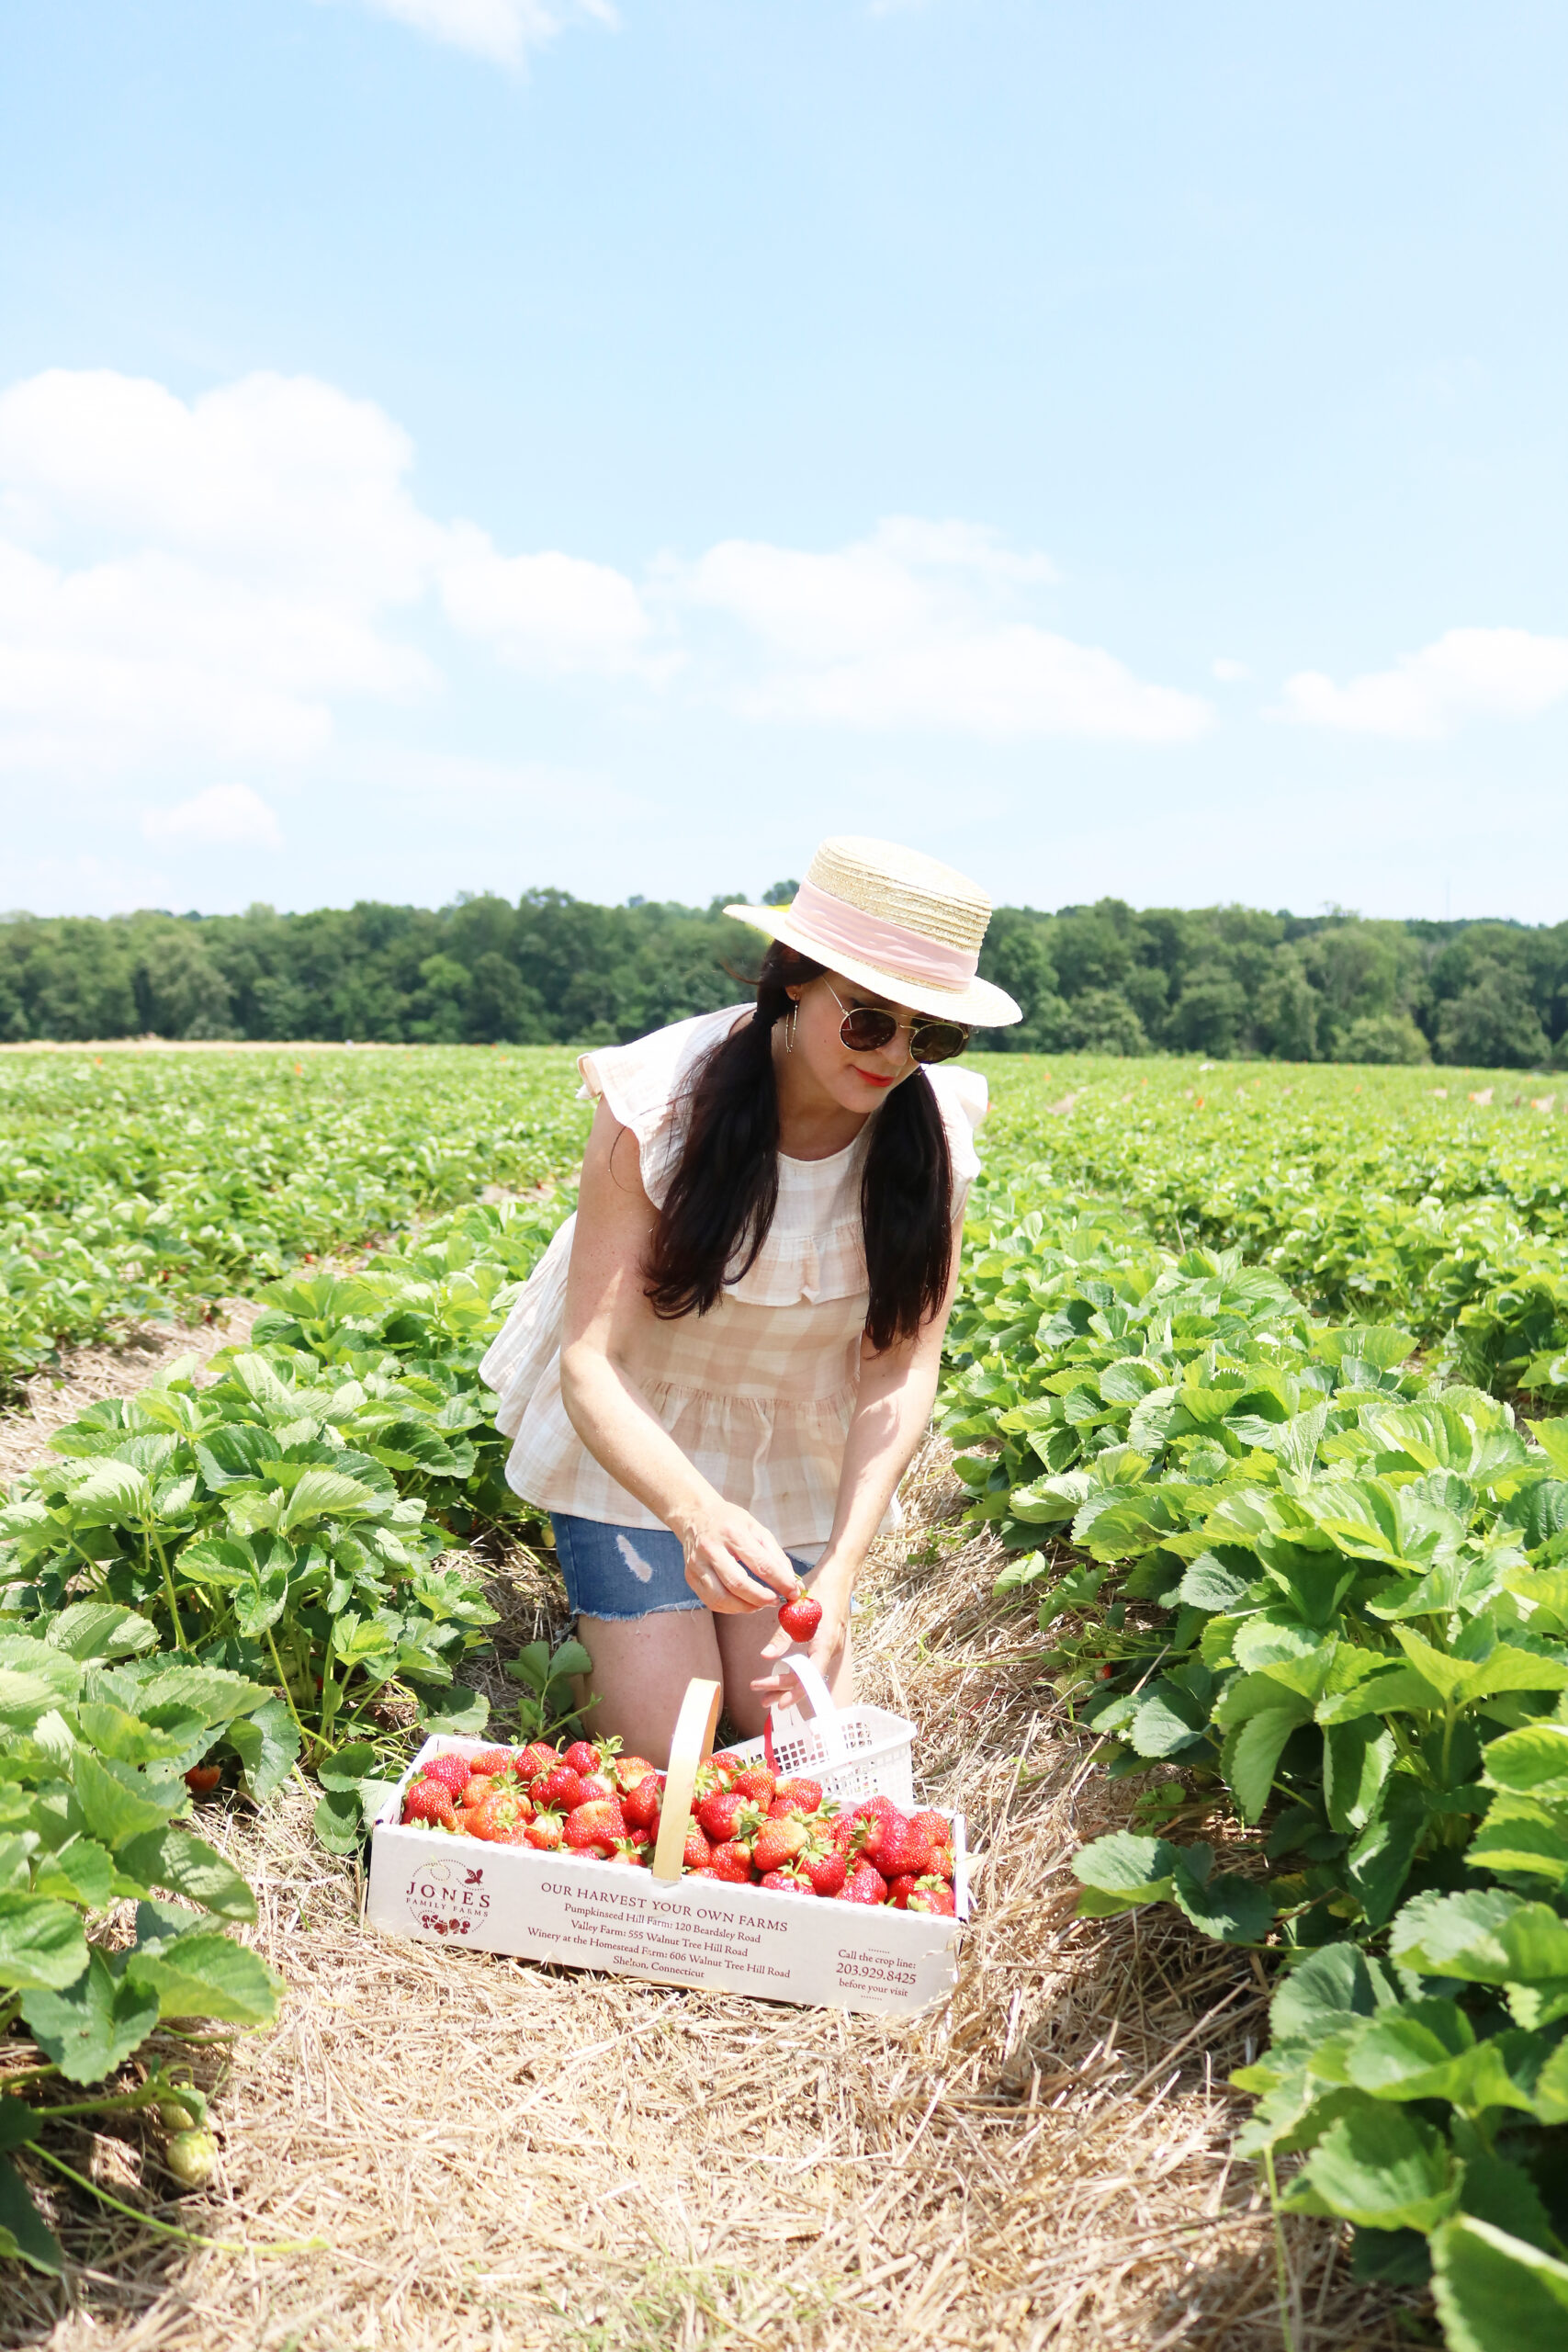 Strawberry Fields Forever, Annual Strawberry picking trip, summer fruit picking, Jones family Farm, New England life, What to wear when strawberry picking    Darleen Meier Top CT Lifestyle Blogger #darleenmeier #strawberryfields